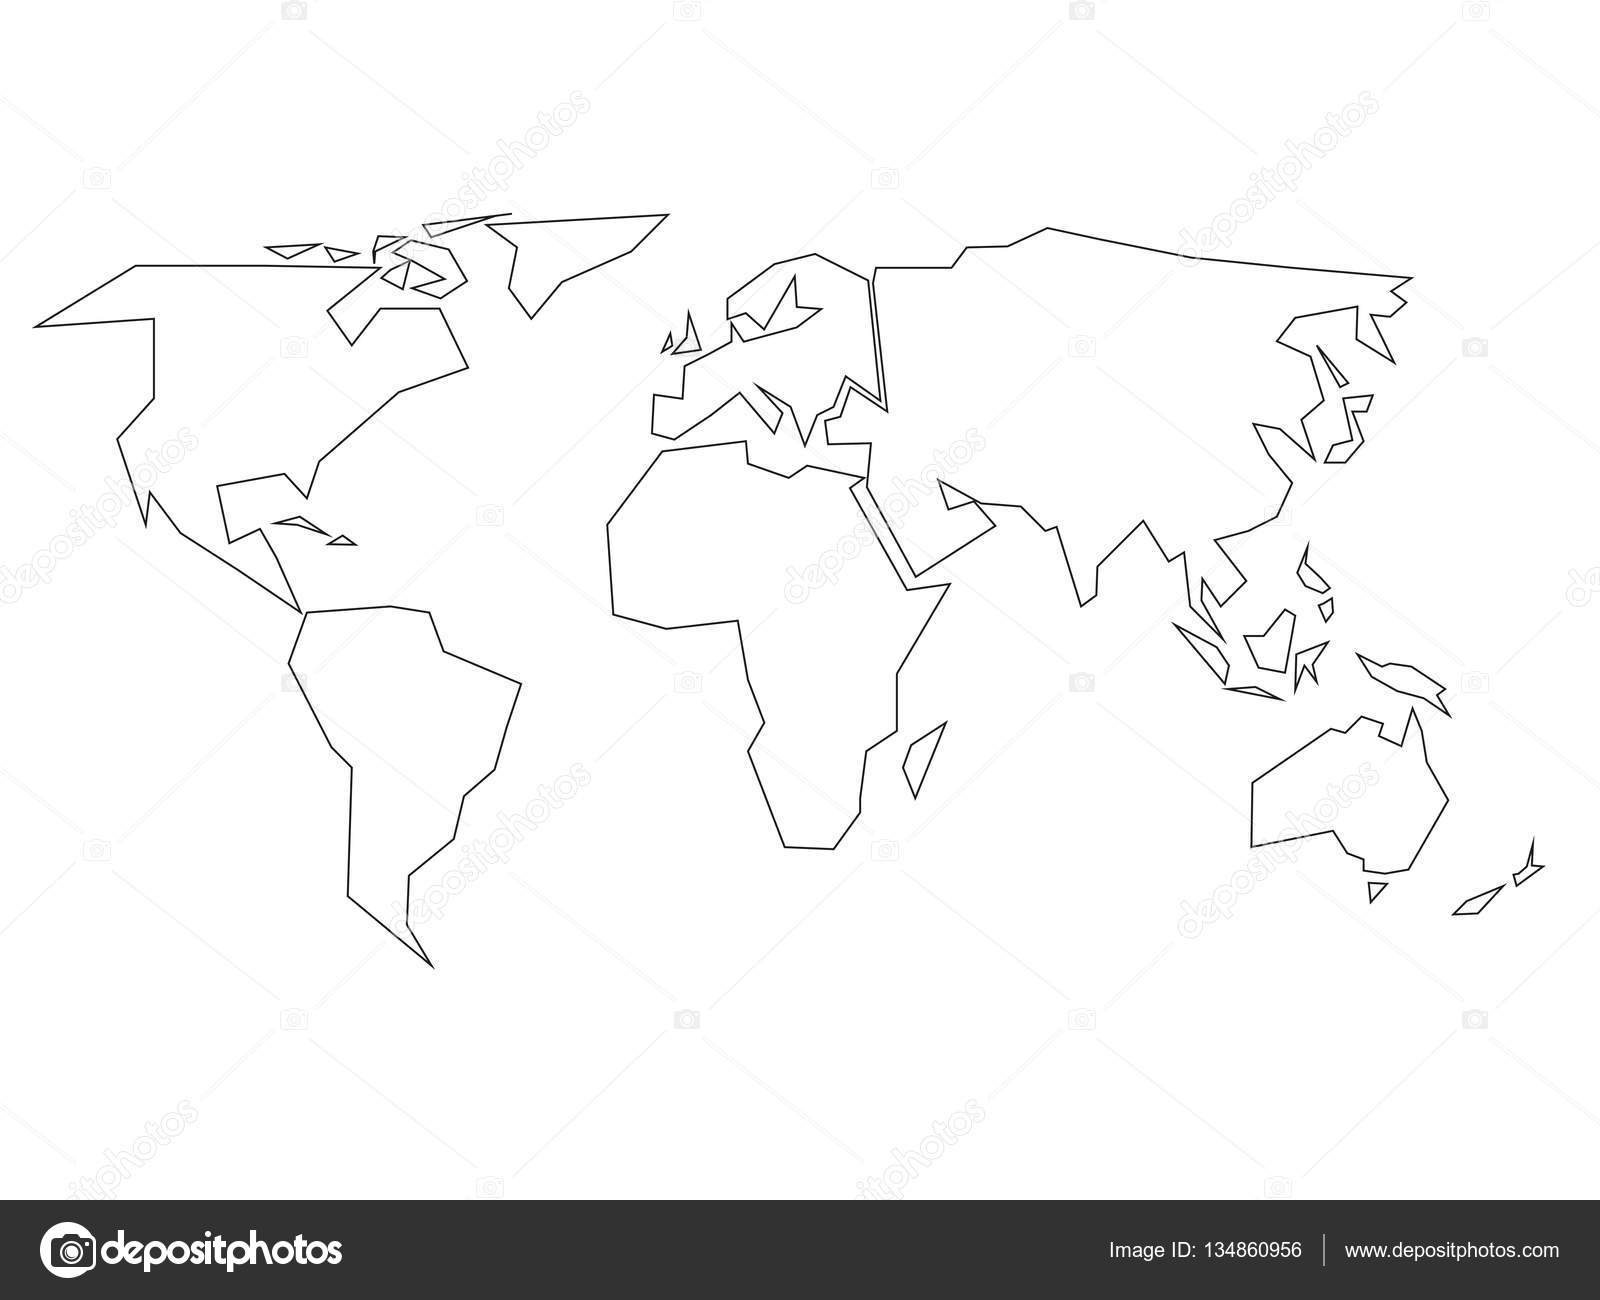 Simplified black outline of world map divided to six continents simplified black outline of world map divided to six continents simple flat vector illustration on white background vector by pyty gumiabroncs Gallery